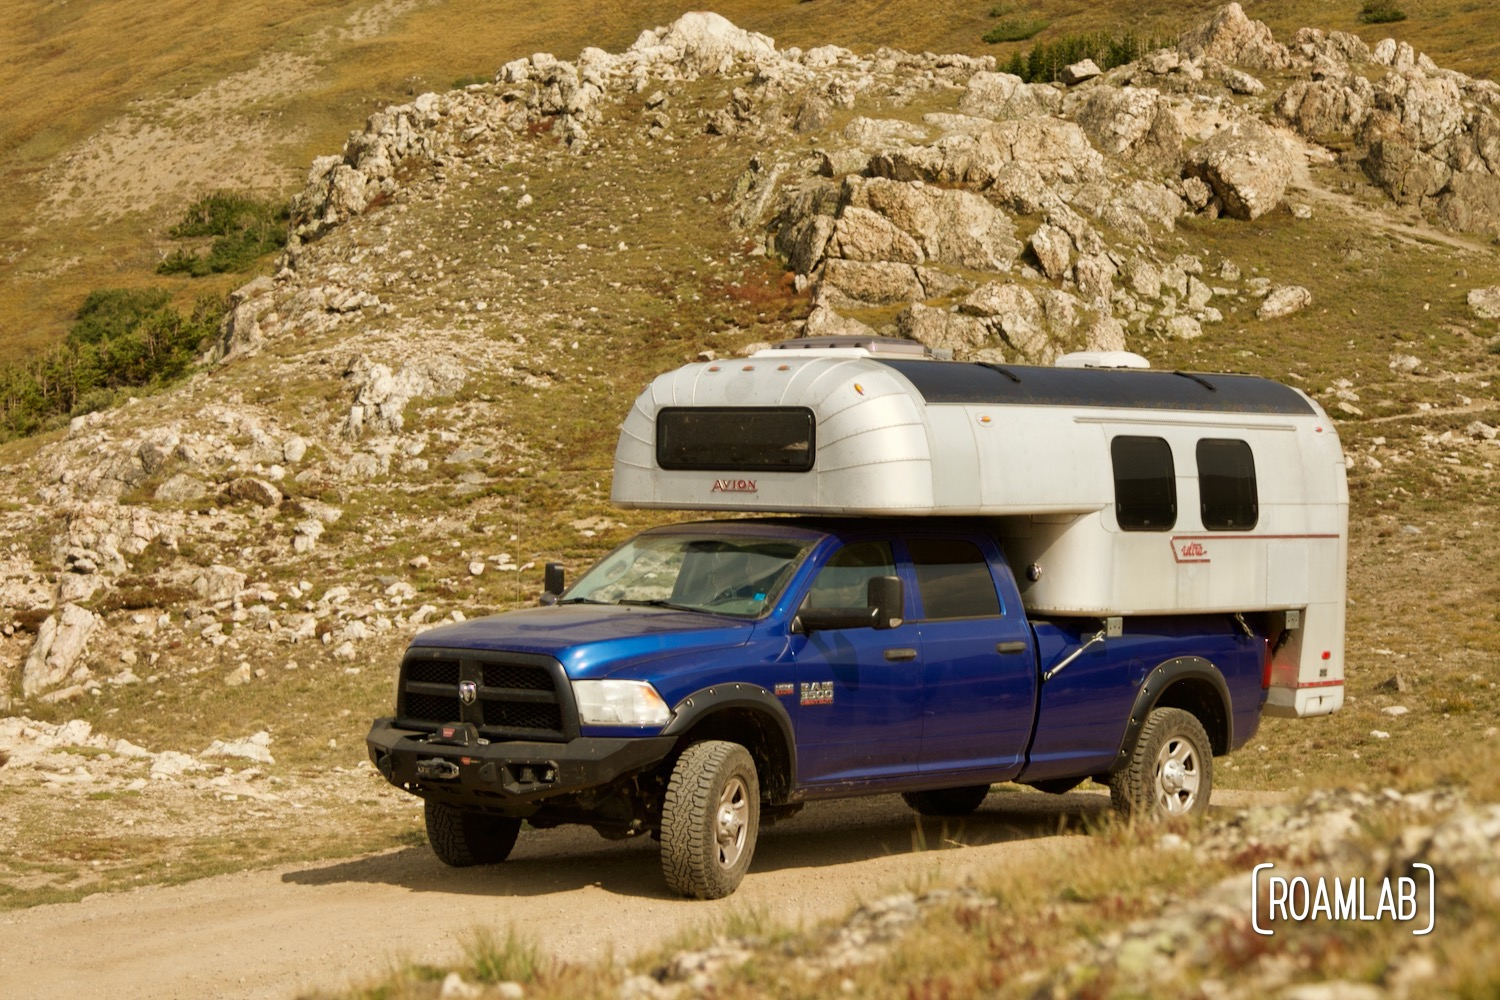 1970 Avion C11 truck camper on a 2015 Ram 2500 tradesman truck camper driving through the alpine tundra on Old River Road in Rocky Mountain National Park.